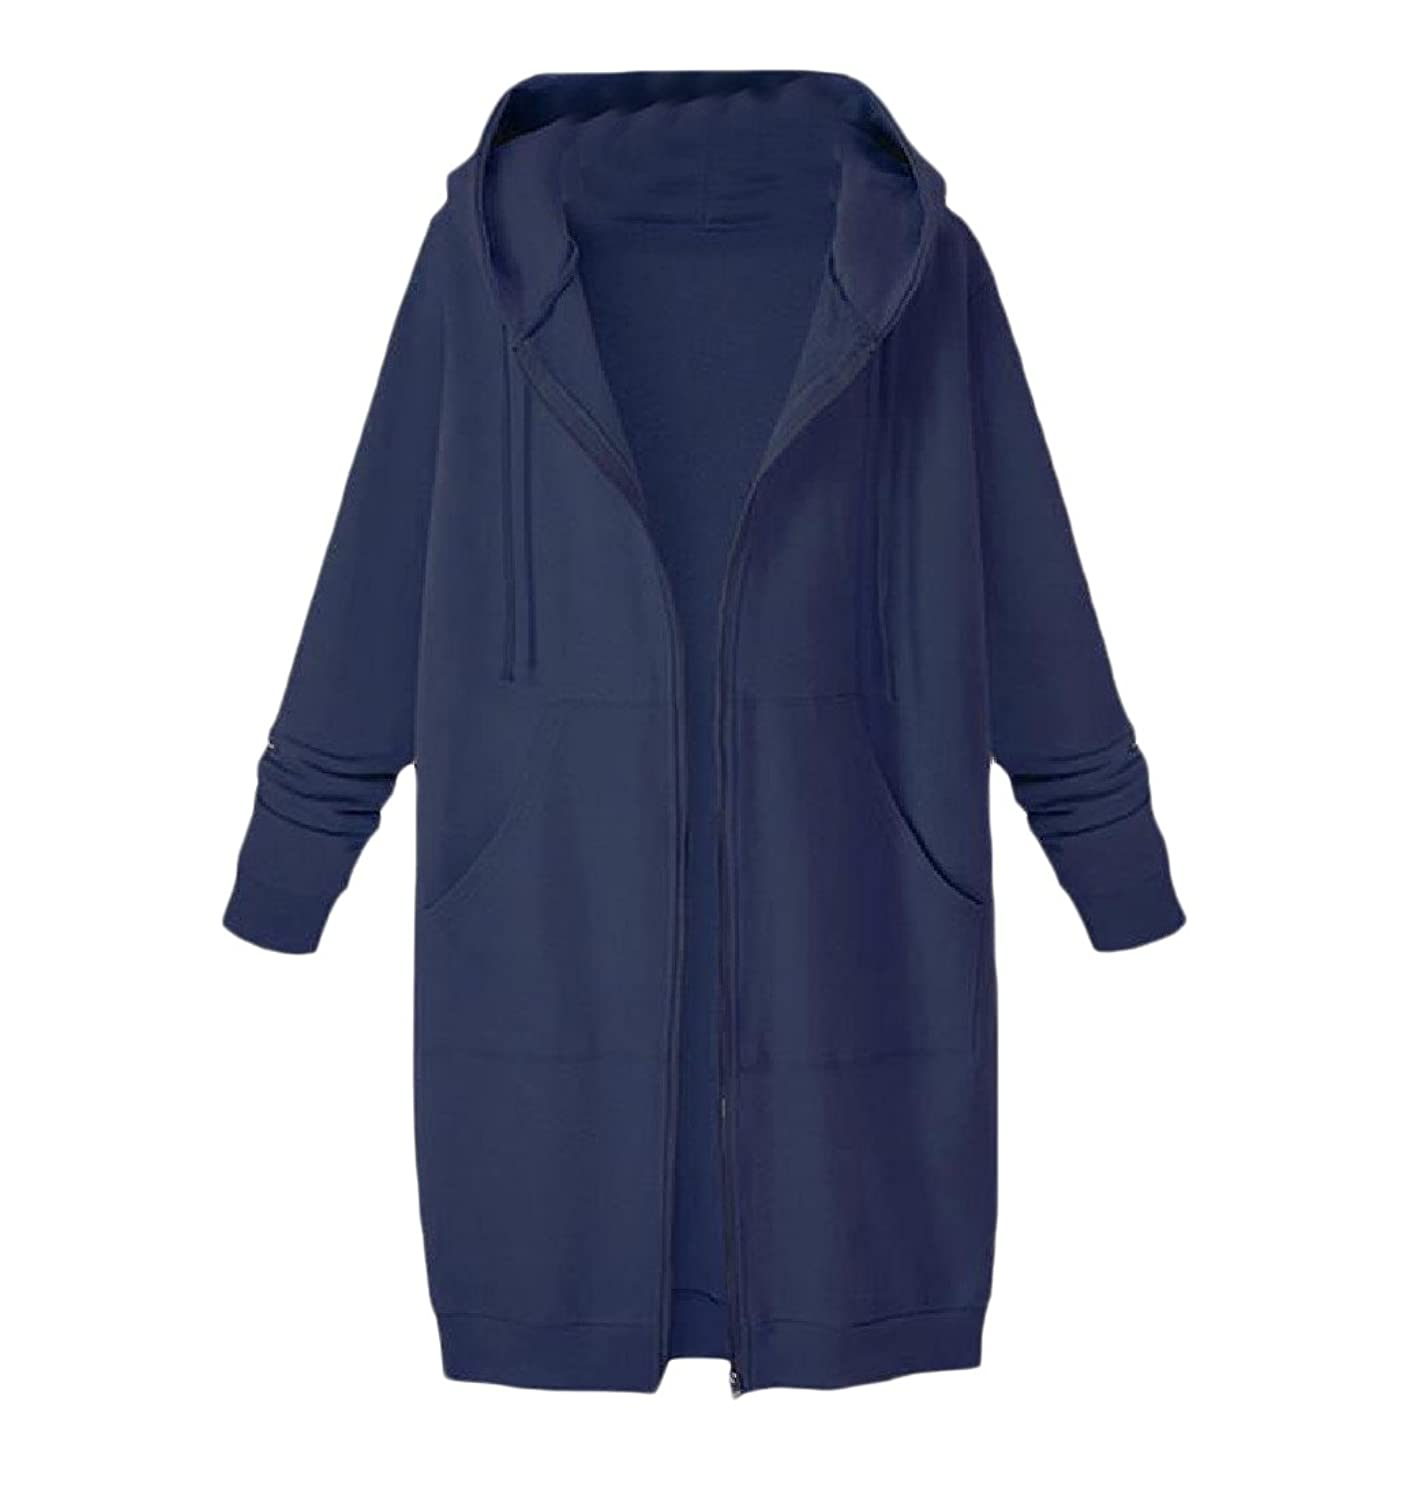 c2b3e6a731f Tootlessly-Women Casual Hooded Plus Velvet Solid-Colored Pocket Jackets  Navy Blue 3XL  Amazon.co.uk  Clothing